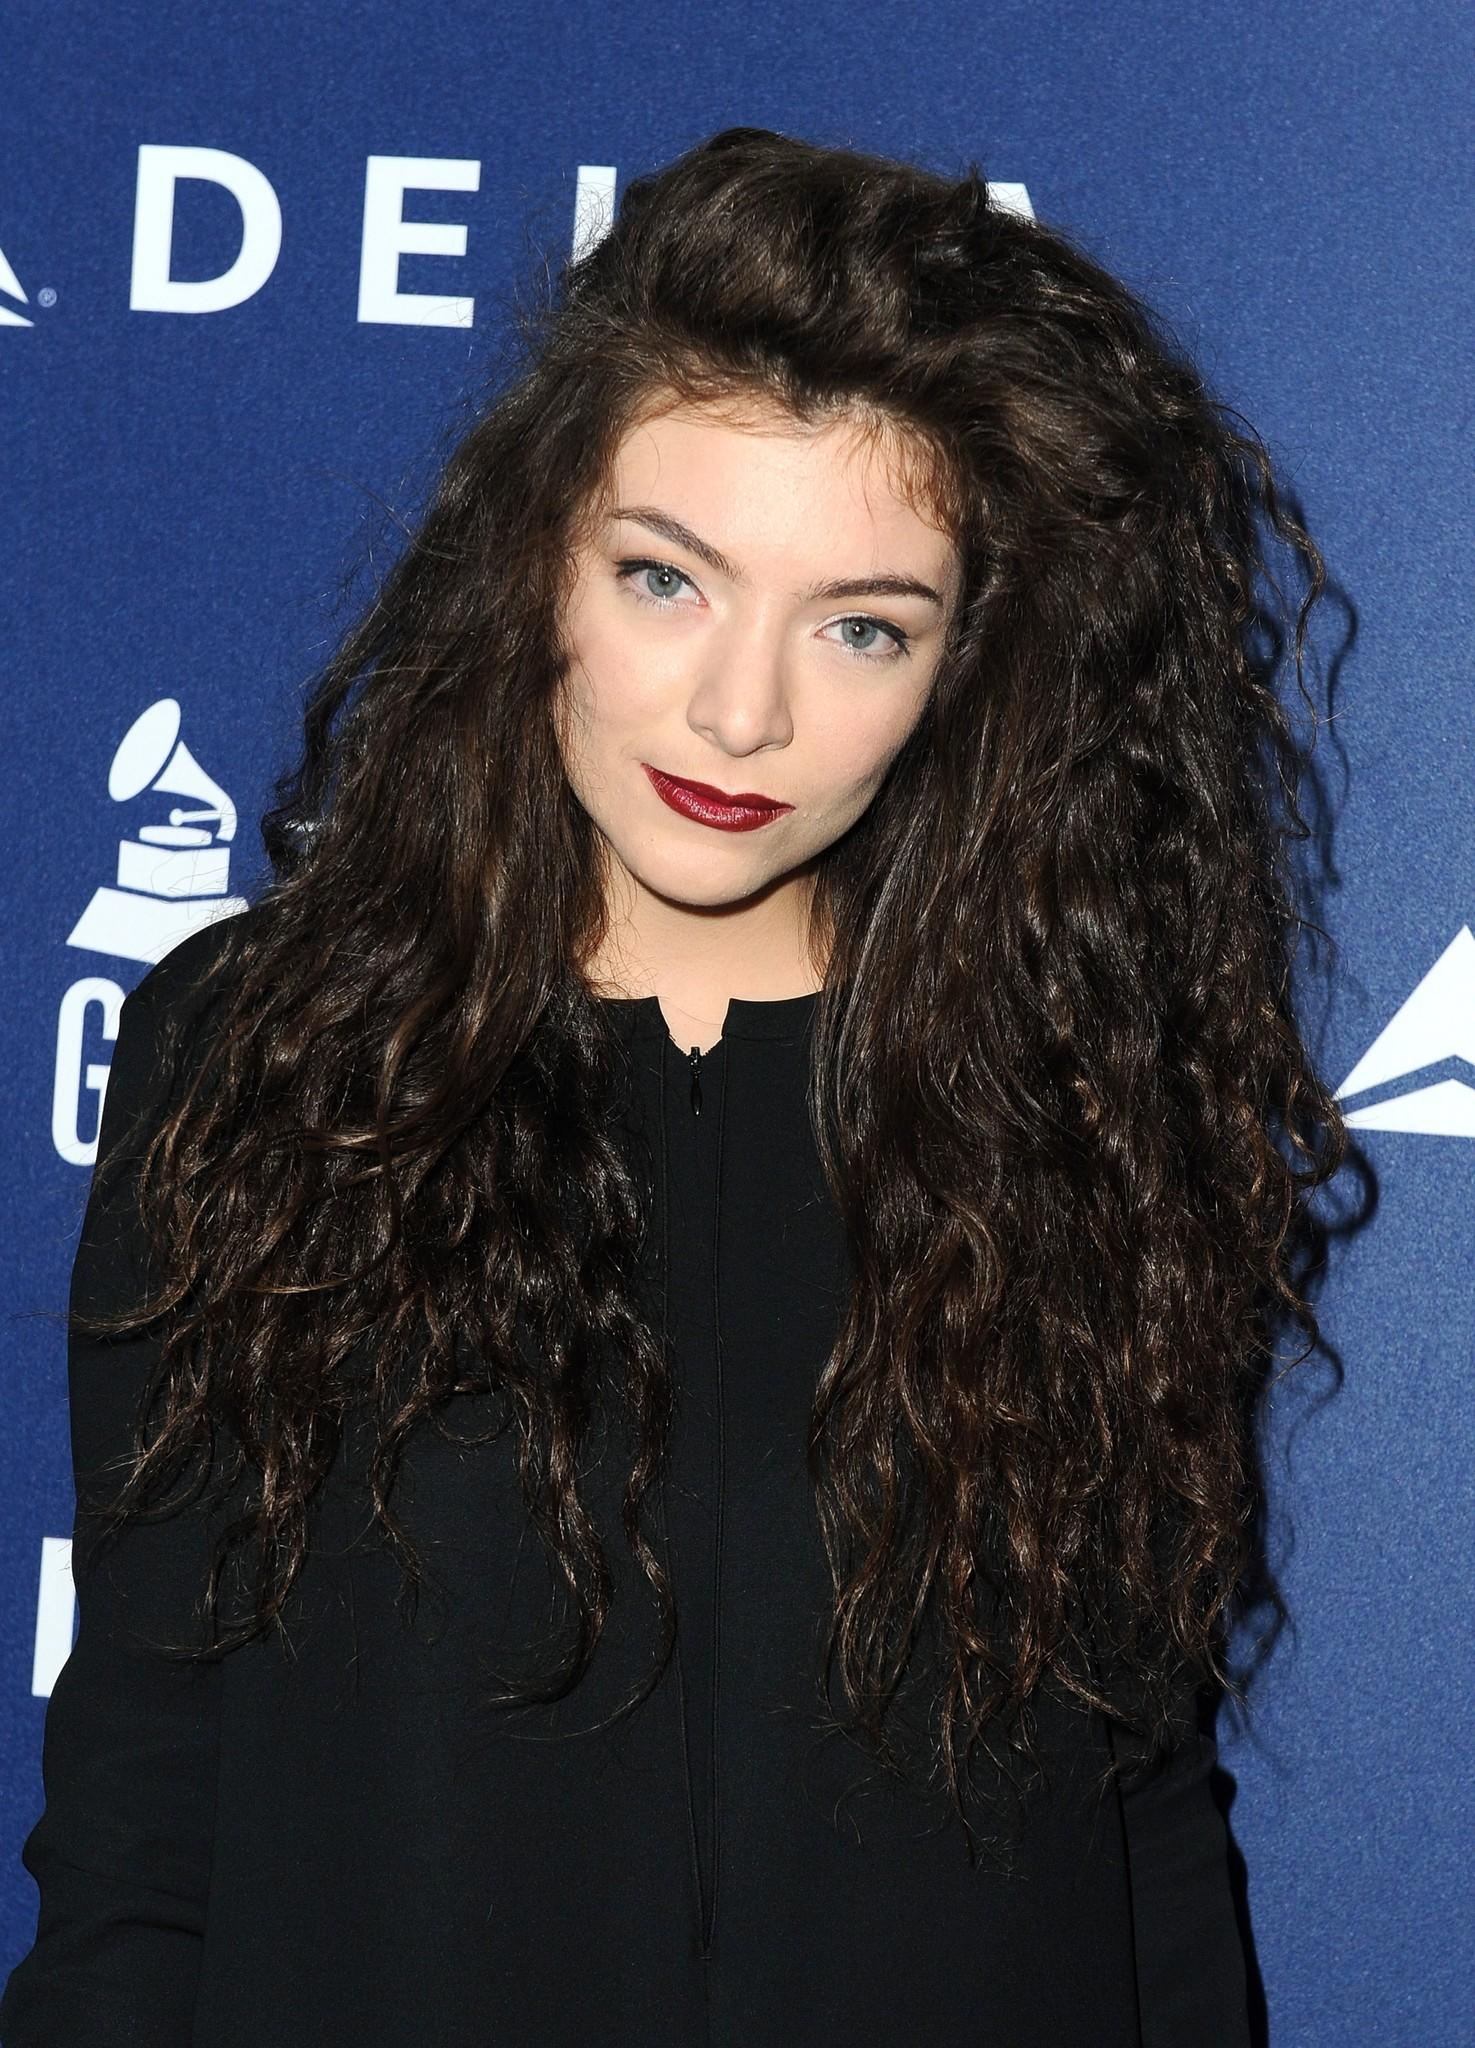 Singer Lorde joins Delta Air Lines in toasting 2014 GRAMMY Weekend with private reception and performance.